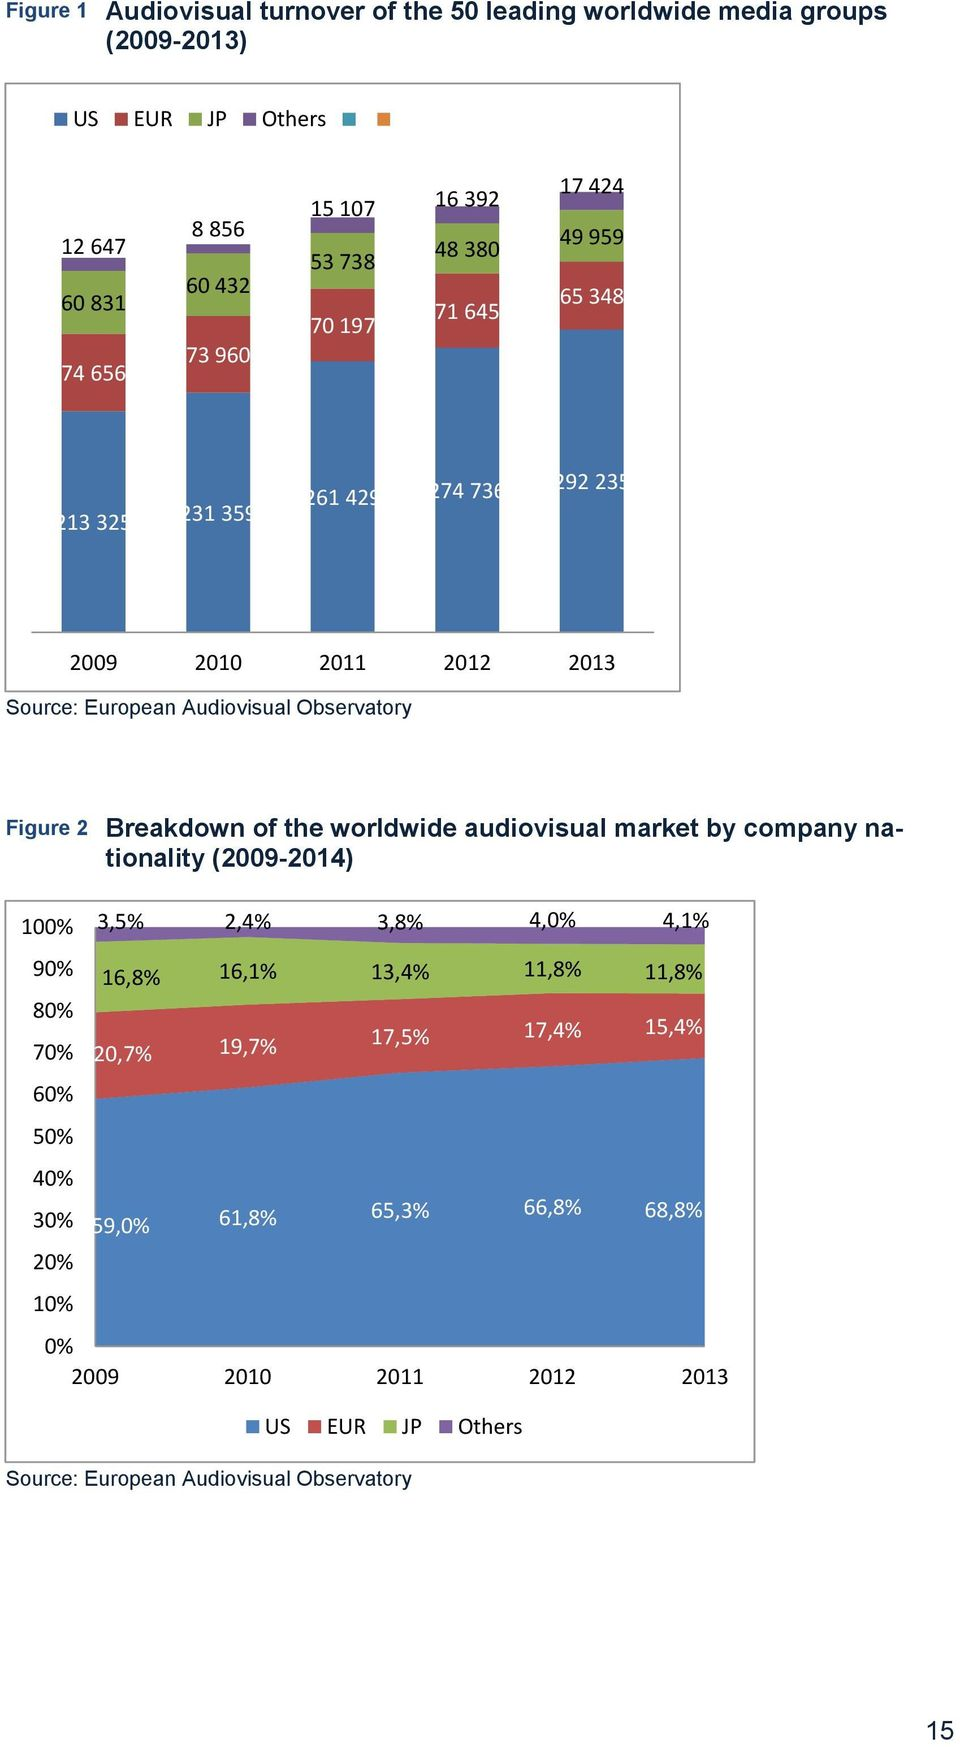 Breakdown of the worldwide audiovisual market by company nationality (2009-2014) 100% 90% 80% 70% 60% 50% 40% 30% 20% 10% 3,5% 2,4% 3,8% 4,0% 4,1% 16,8% 16,1%